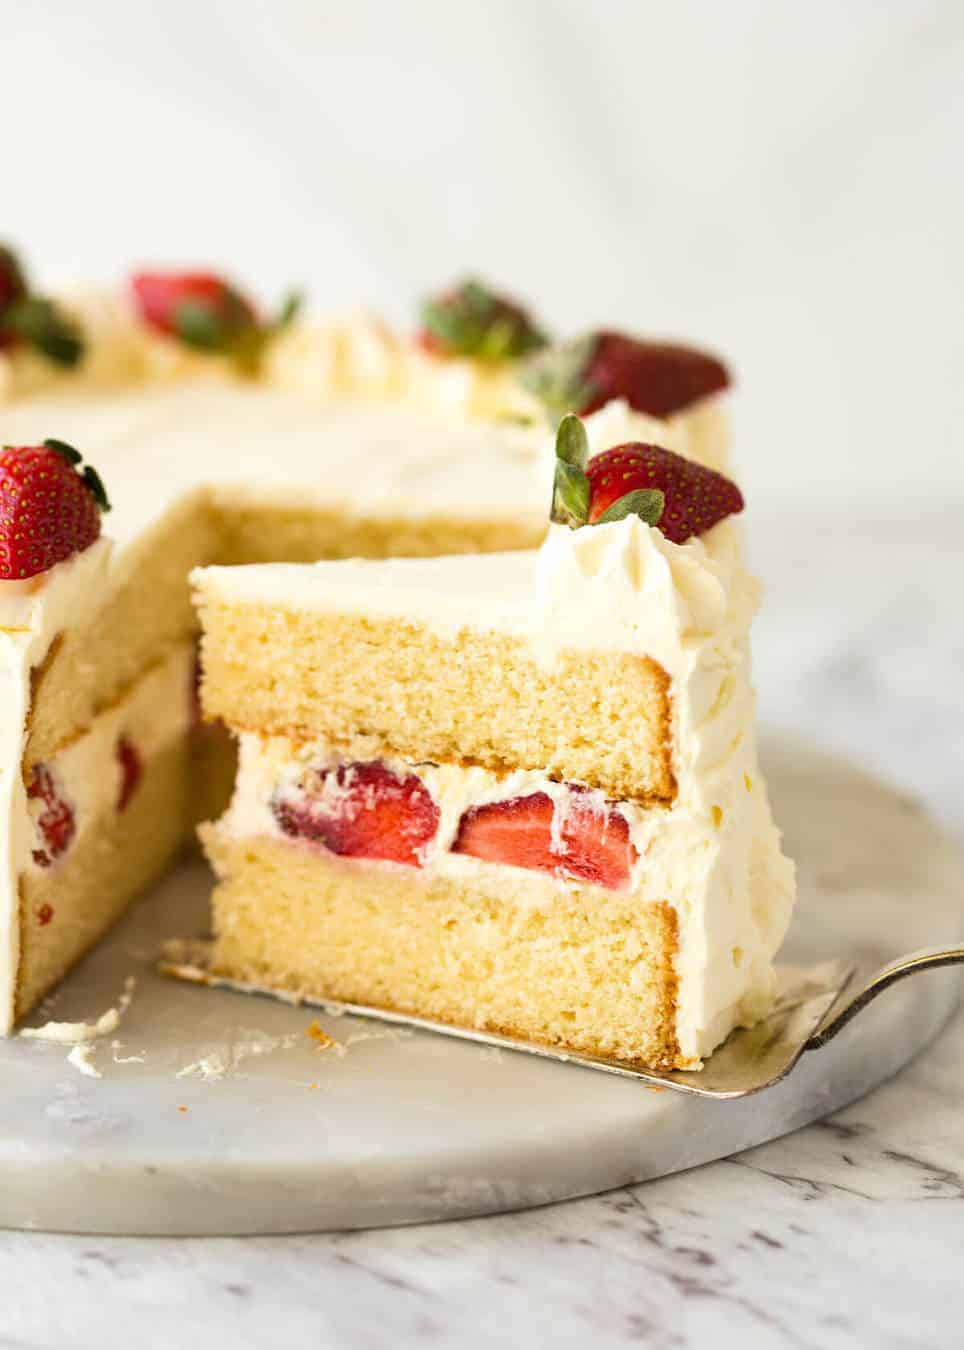 Sponge Cake Without Flour